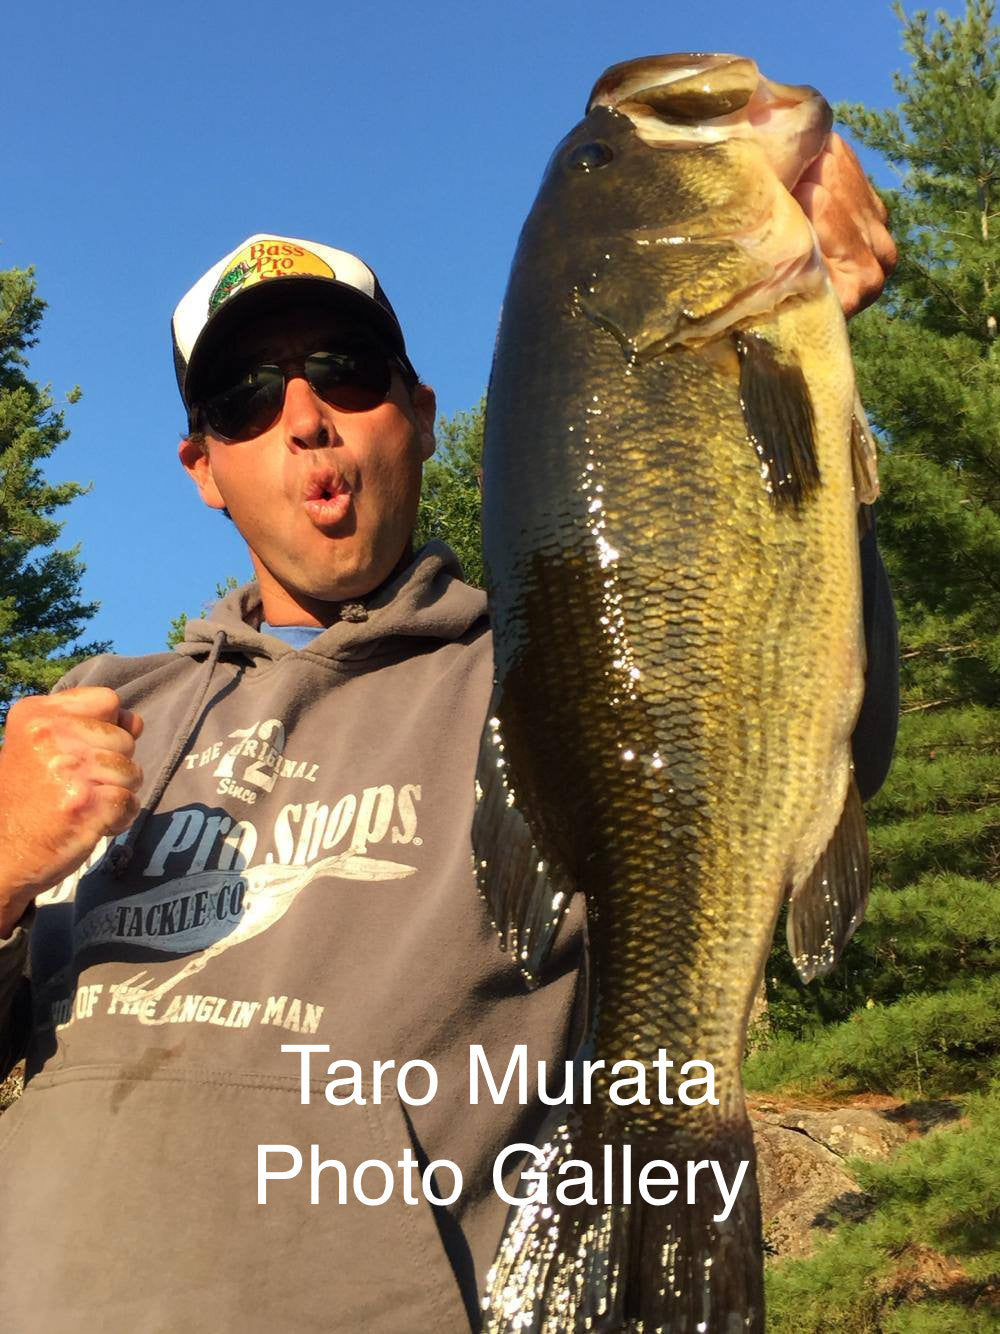 taro murata with nishine lure works